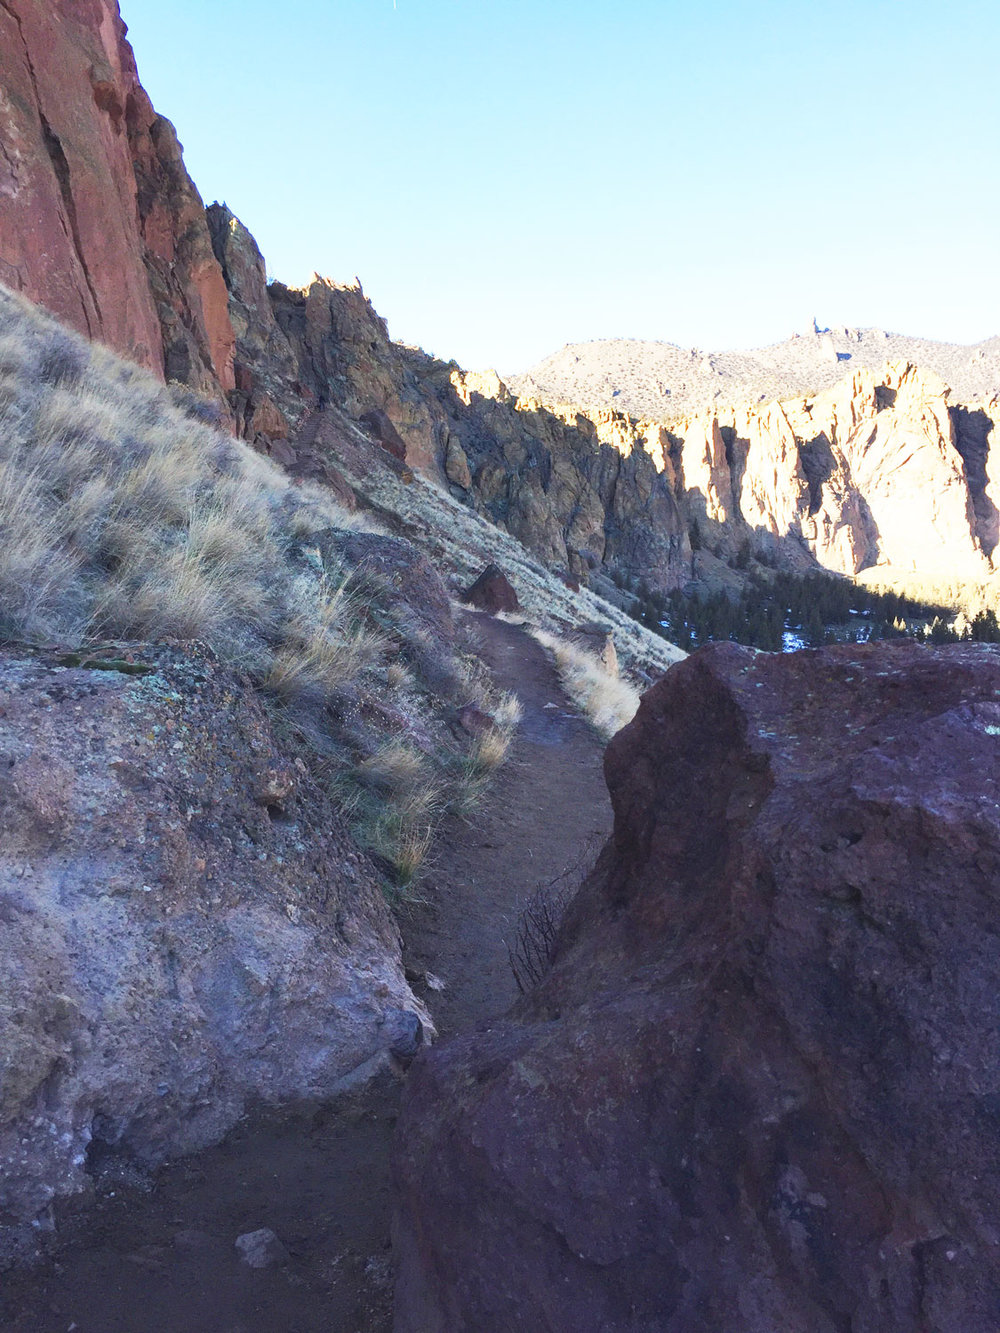 Once past the Red Wall, the Misery Ridge Trail continues along the ridge with the Crooked River down below at Smith Rock State Park.